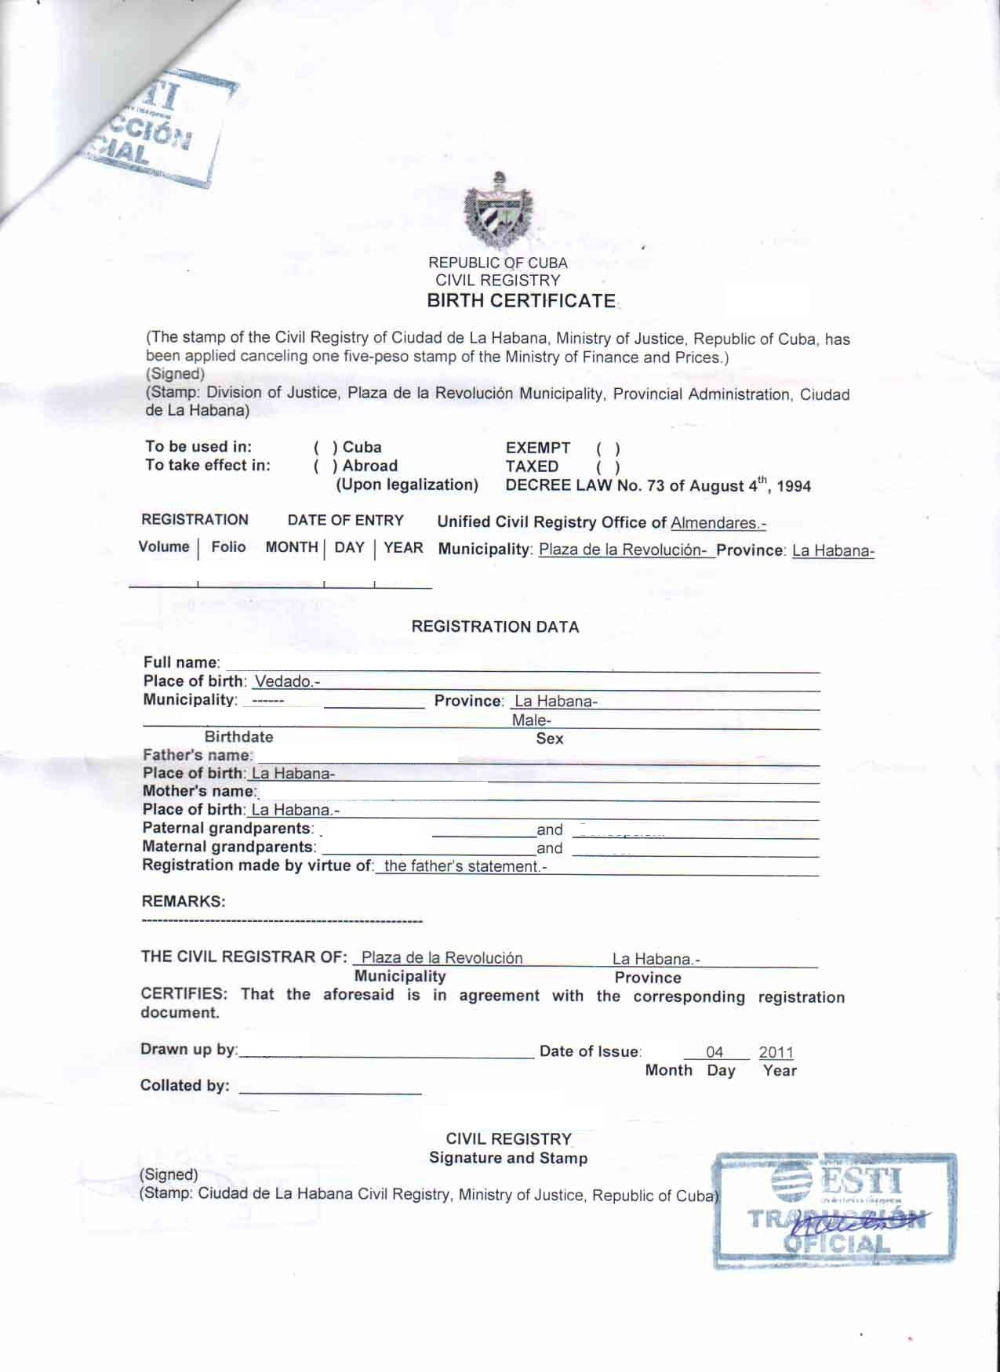 Get Our Image Of Divorce Certificate Translation From Spanish To